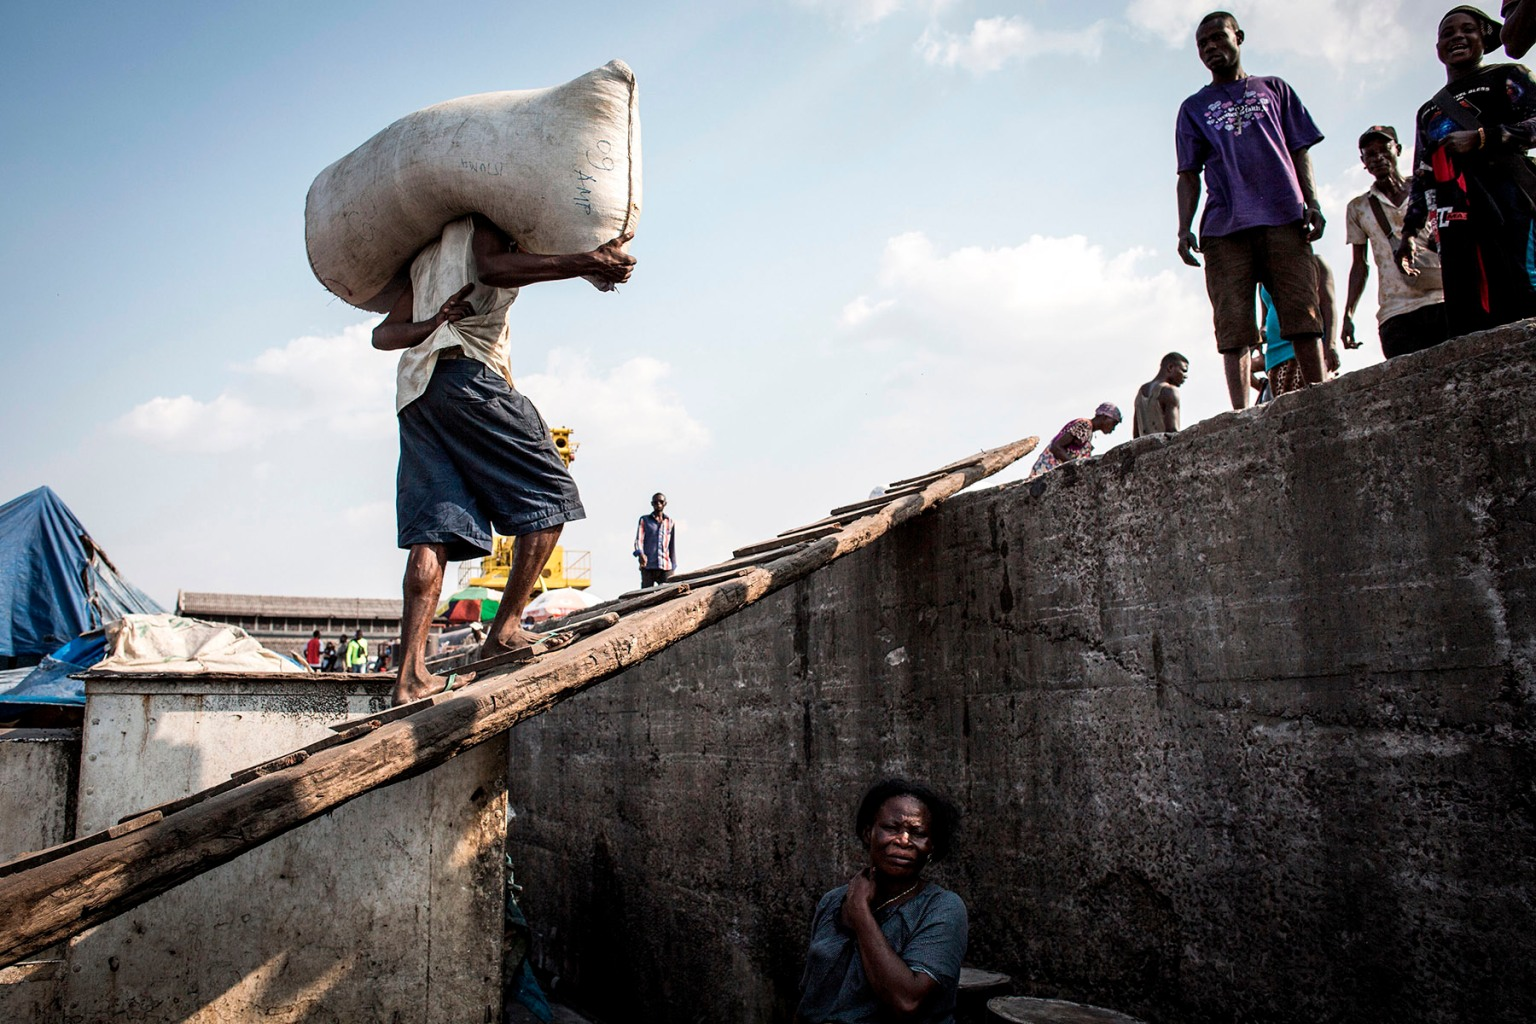 A Congolese man carries a sack in Kinshasa, a port along the Congo River, on Sept. 25. JOHN WESSELS/AFP/Getty Images